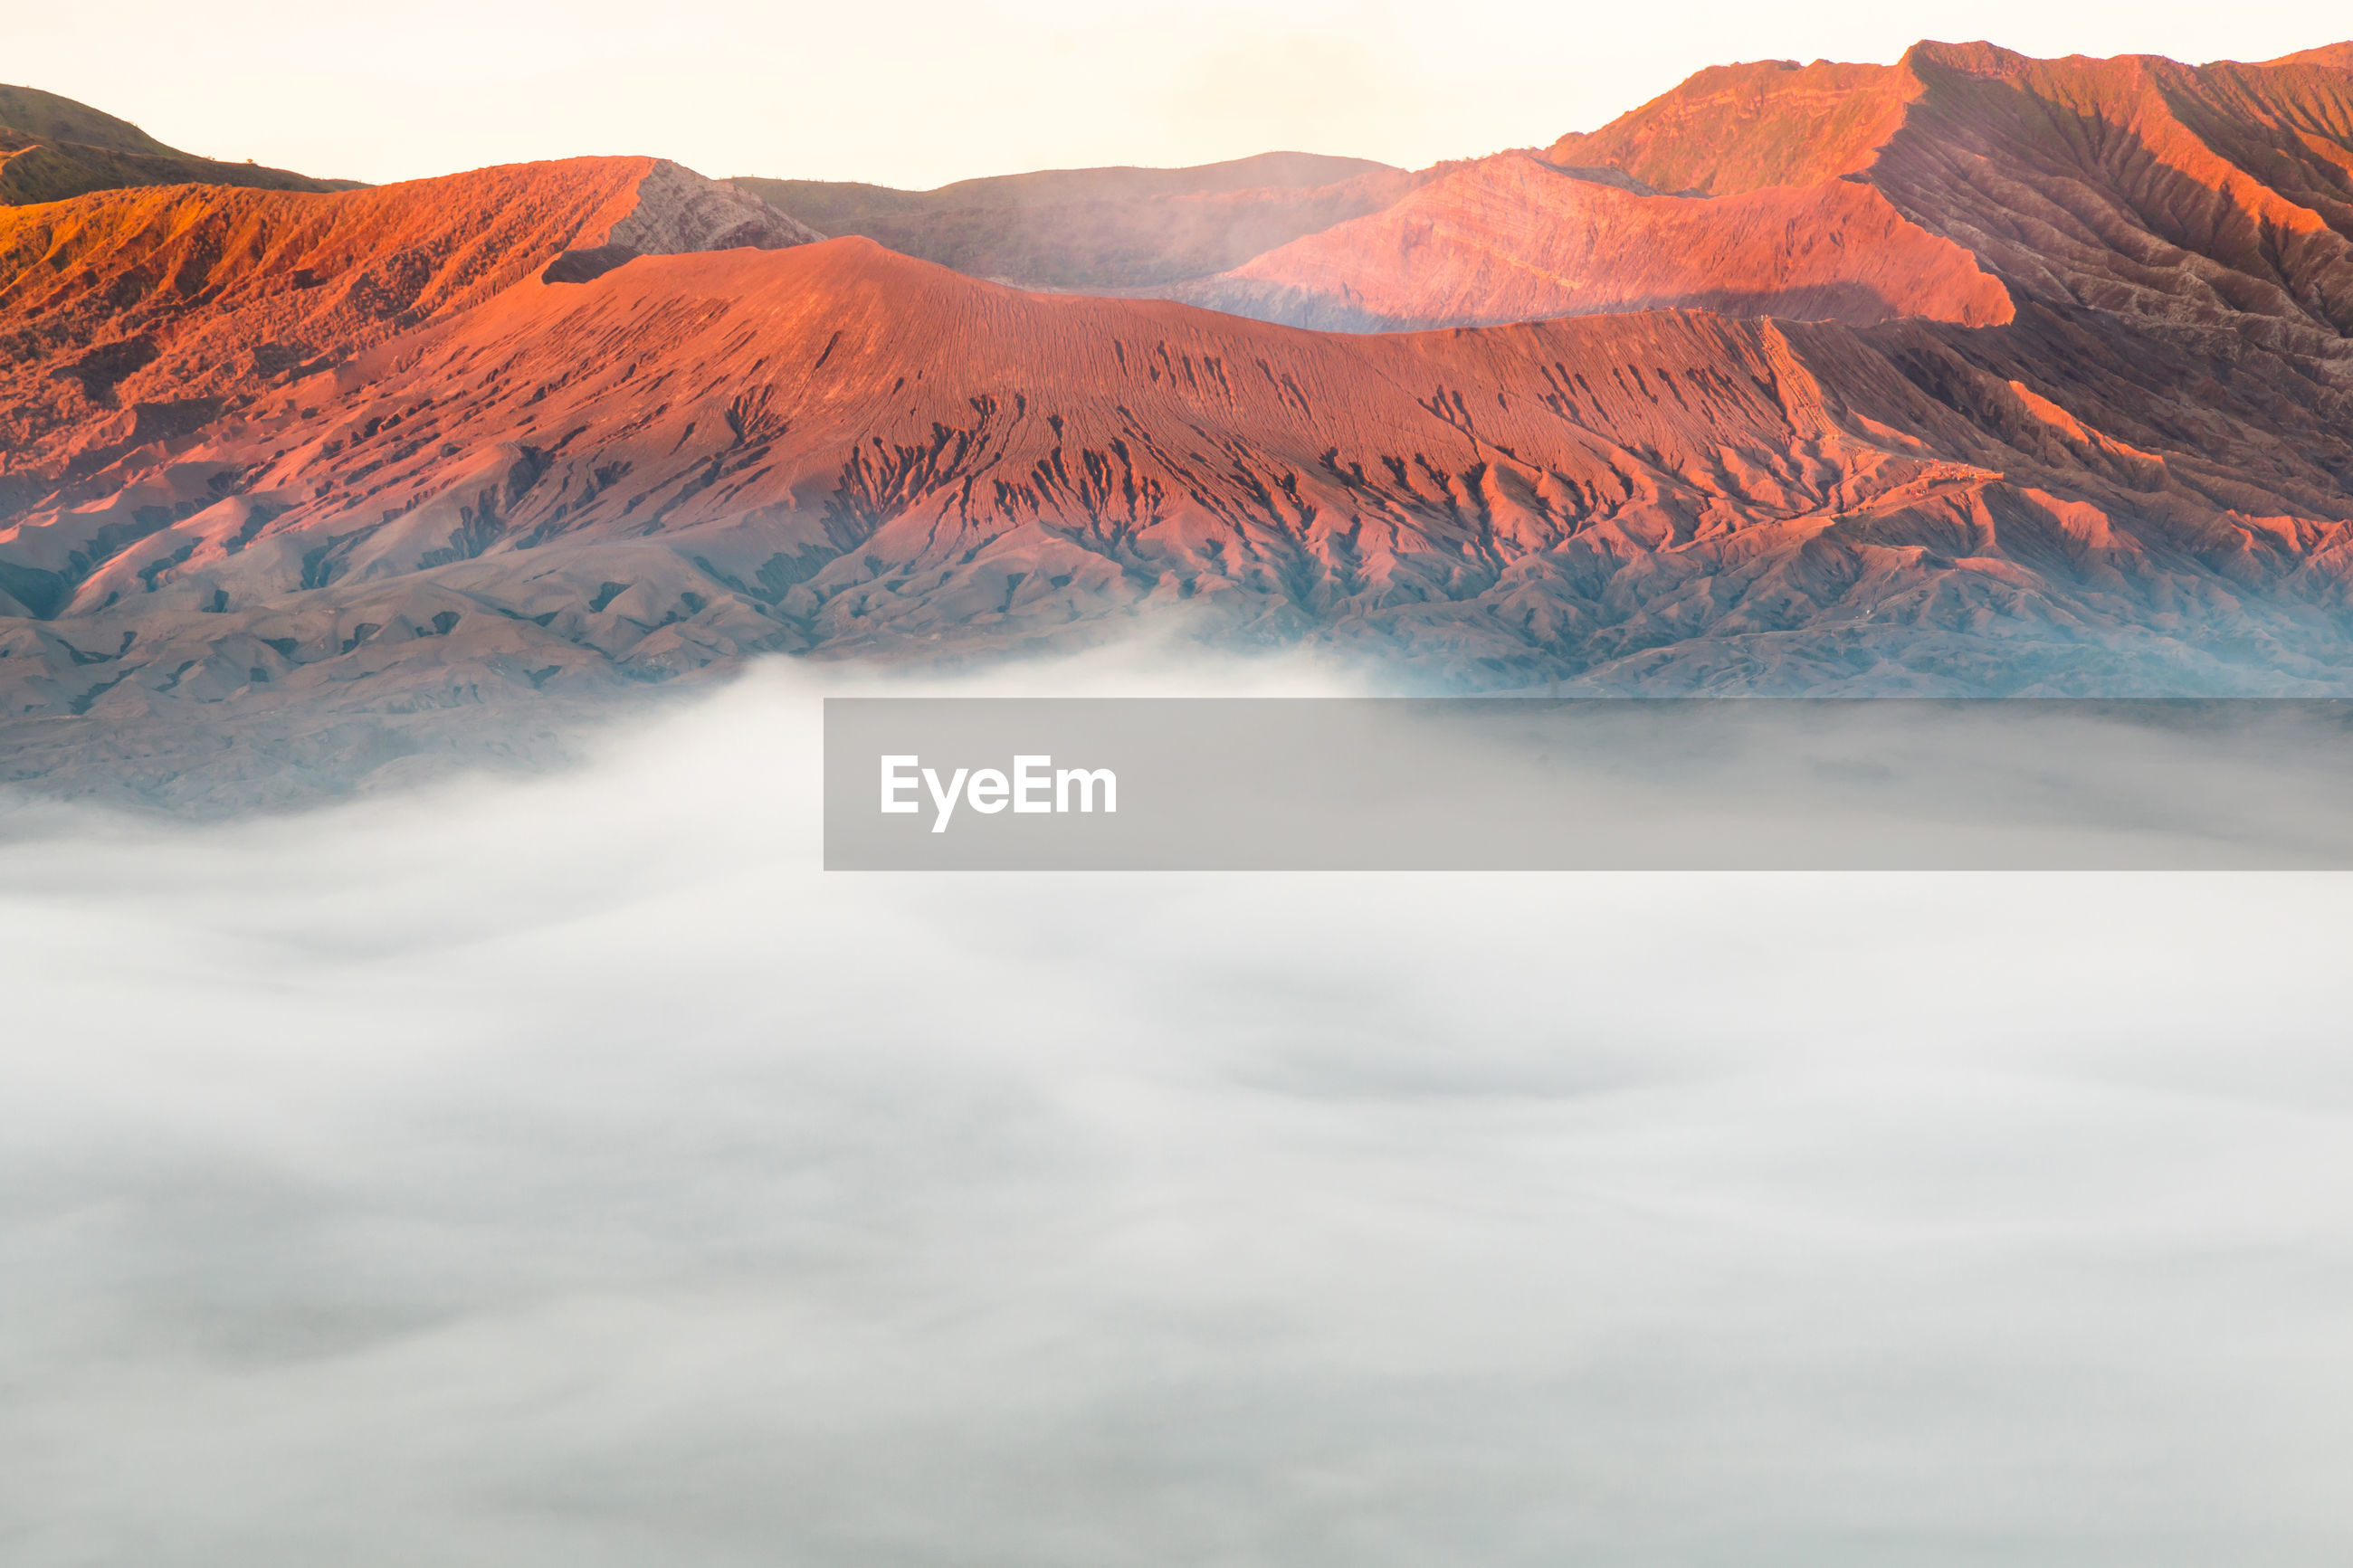 SCENIC VIEW OF VOLCANIC MOUNTAINS AGAINST SKY